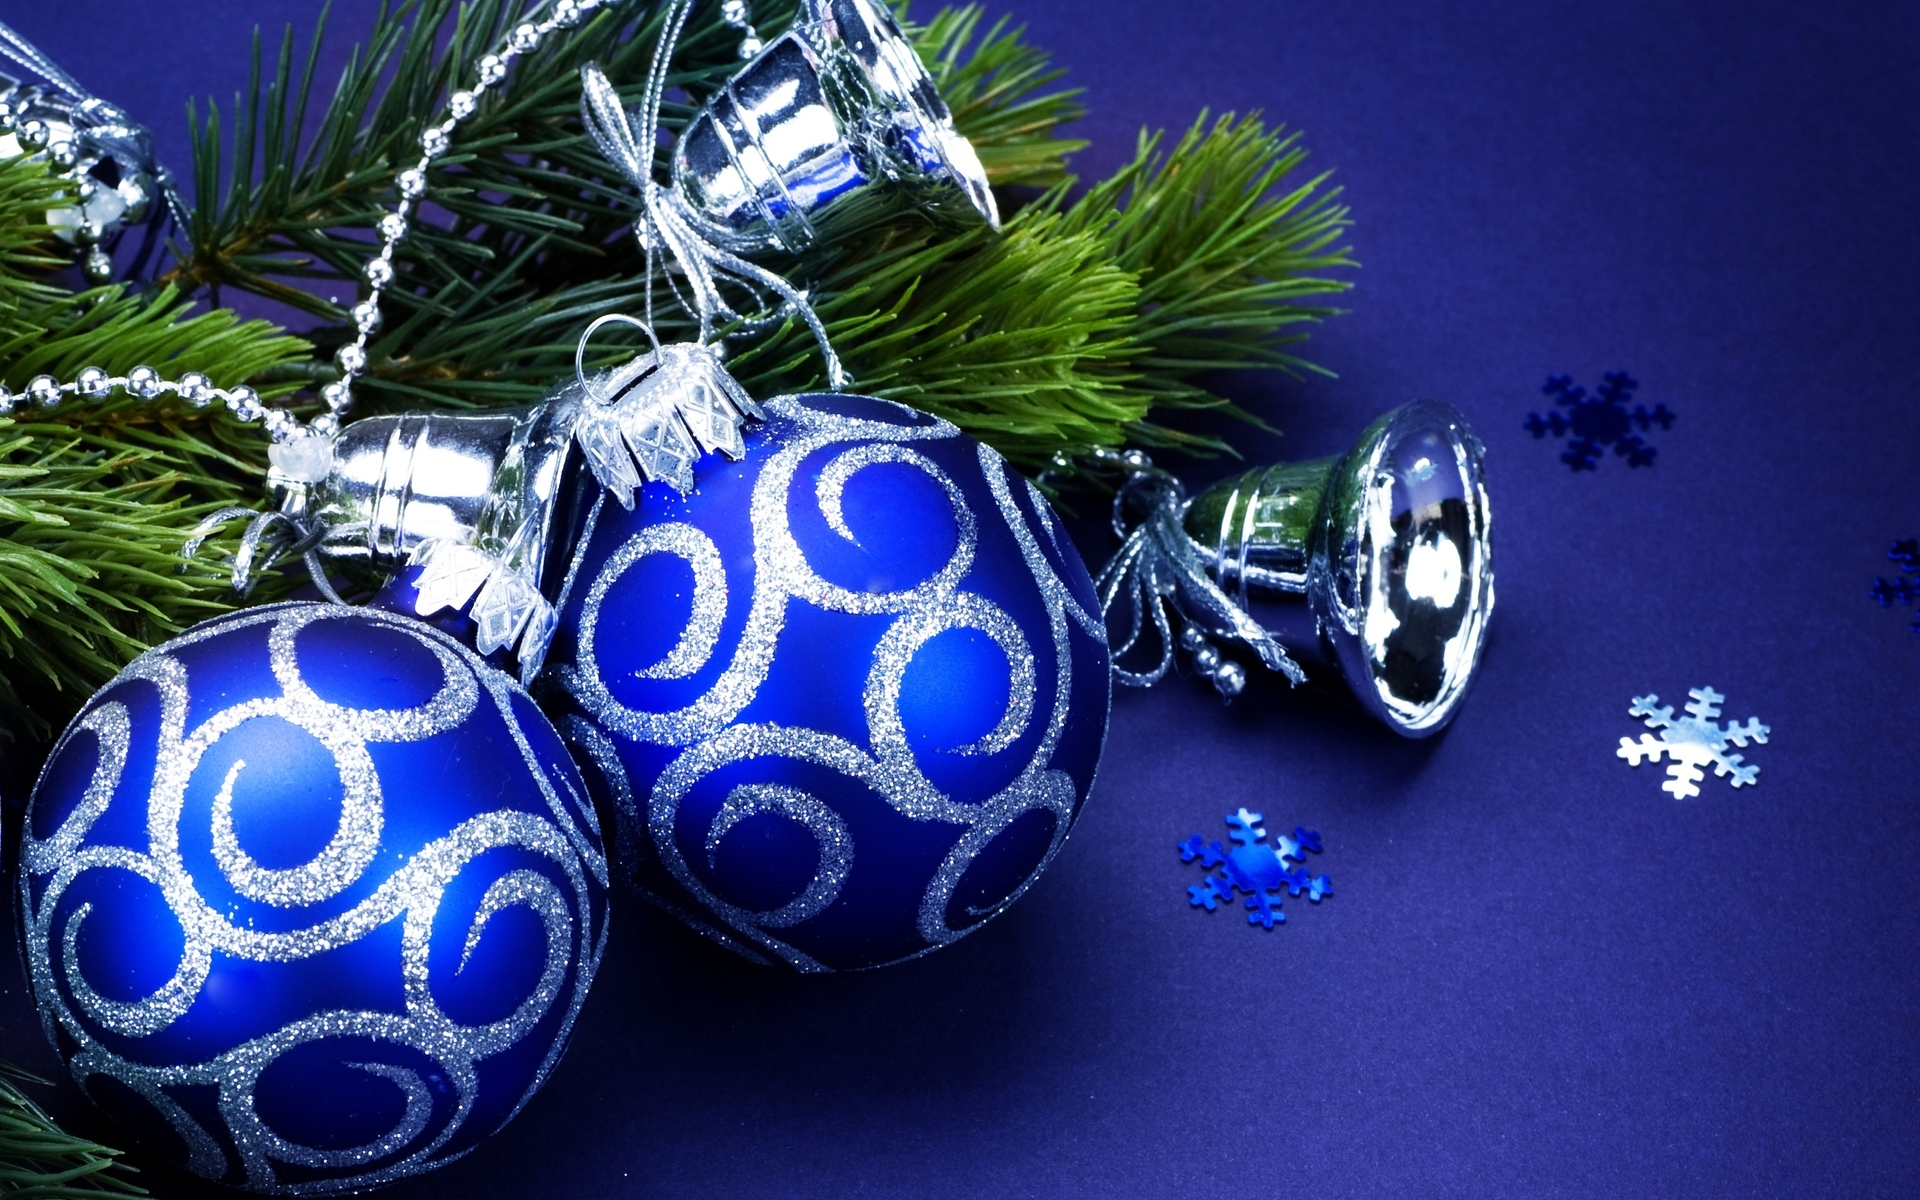 19682 download wallpaper Holidays, New Year, Christmas, Xmas screensavers and pictures for free